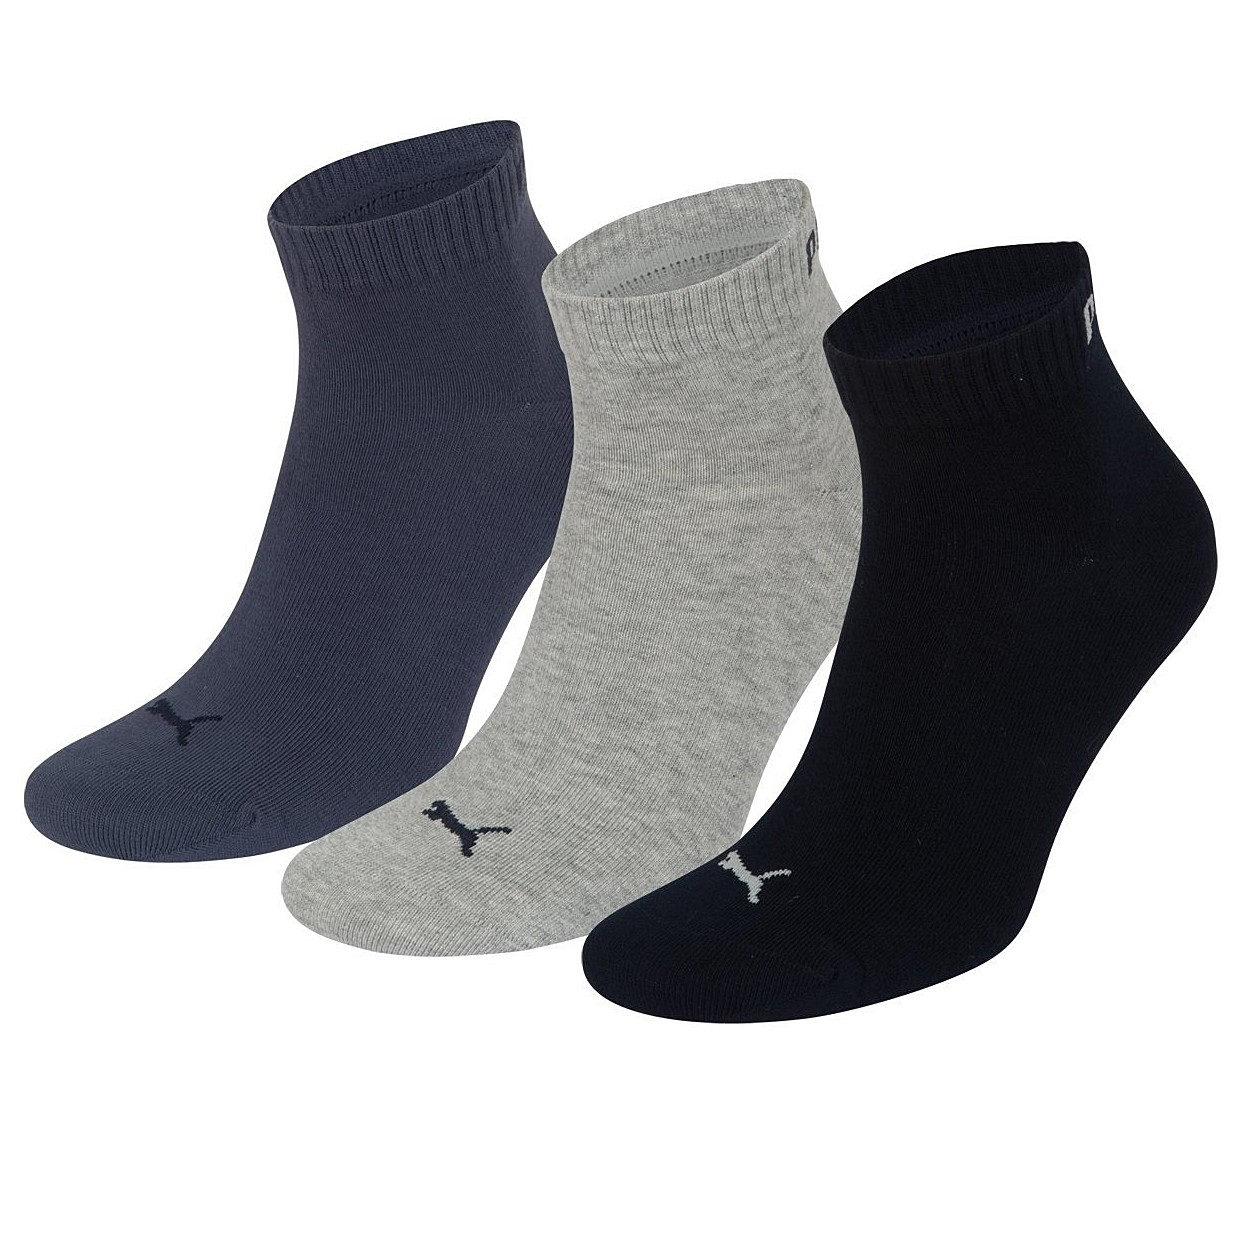 puma invisible 3p sneaker socken sportsocken 3er pack navy. Black Bedroom Furniture Sets. Home Design Ideas